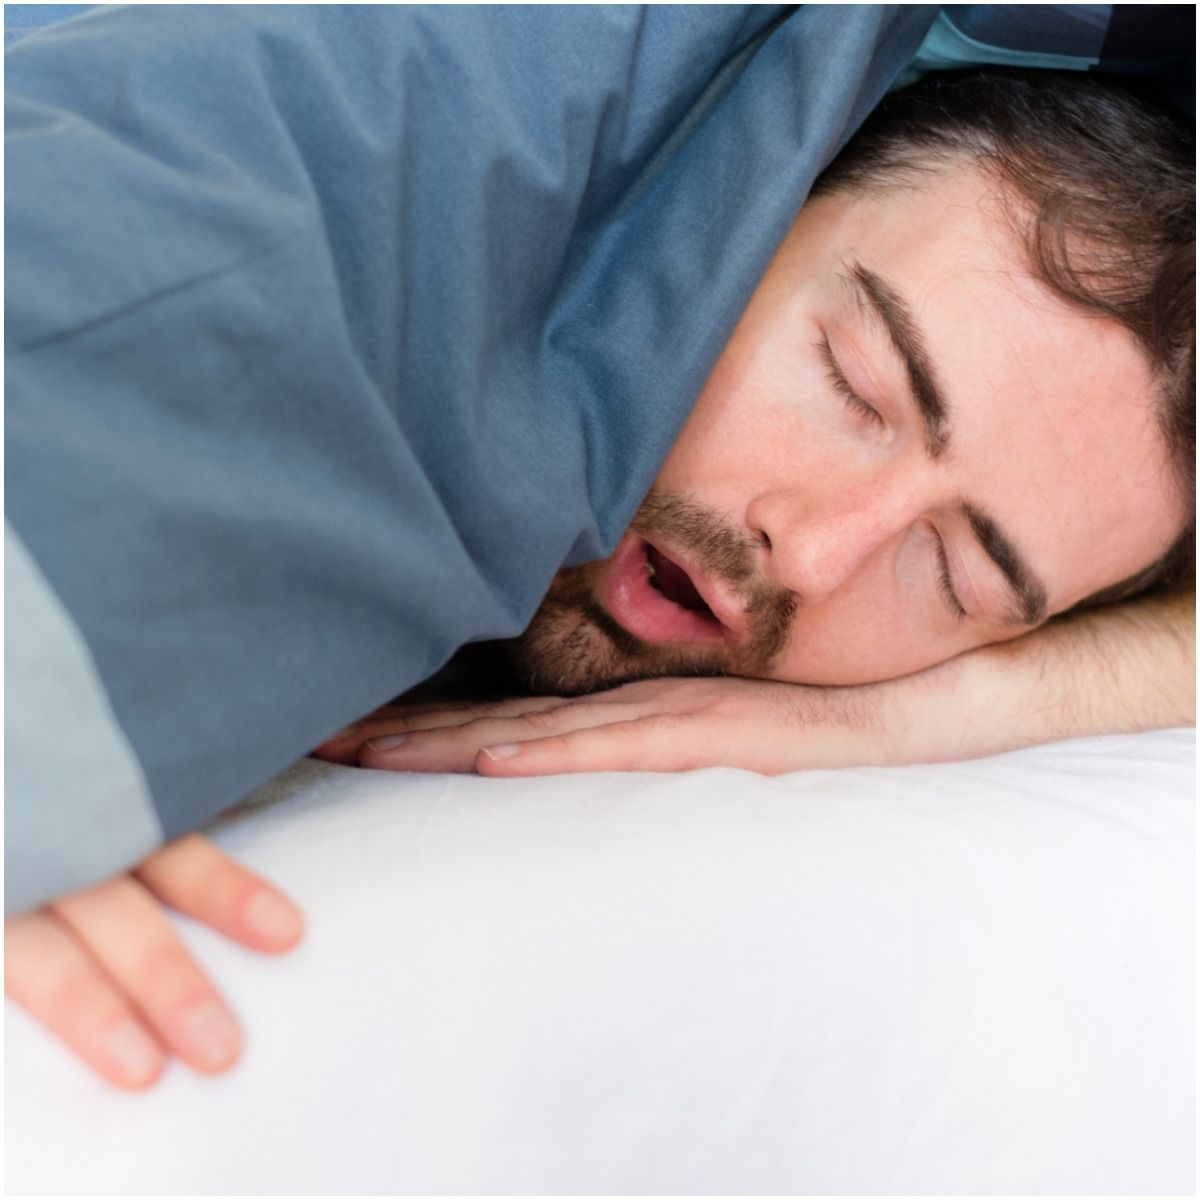 Emotional & Spiritual Meaning Of Sleep Apnea